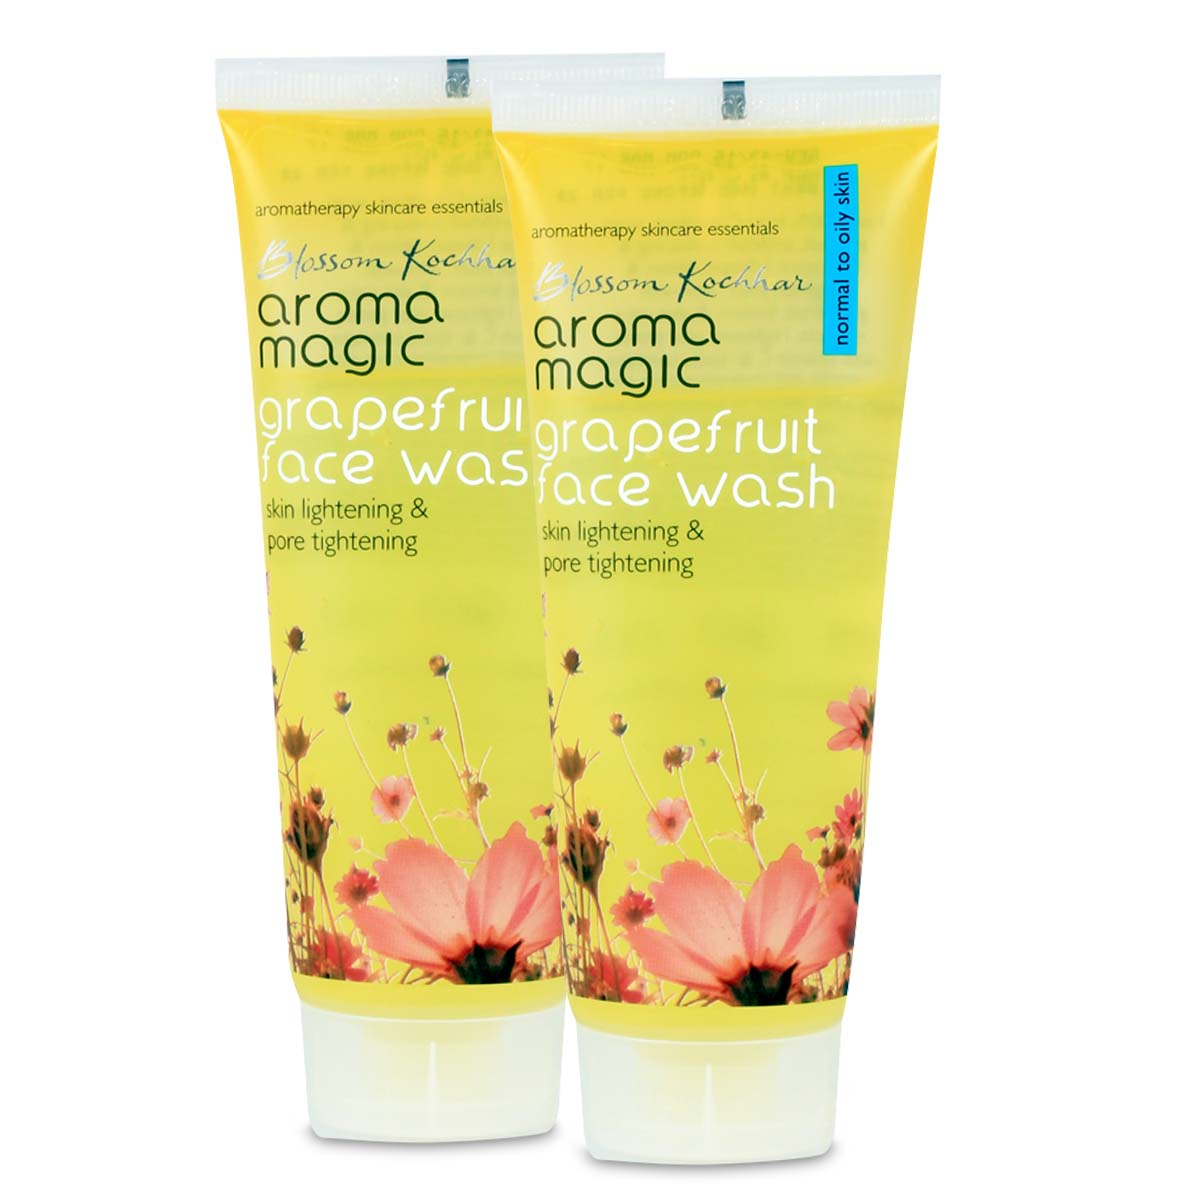 Aroma Magic Grapefruit Face Wash 100 ml Pack Of 2